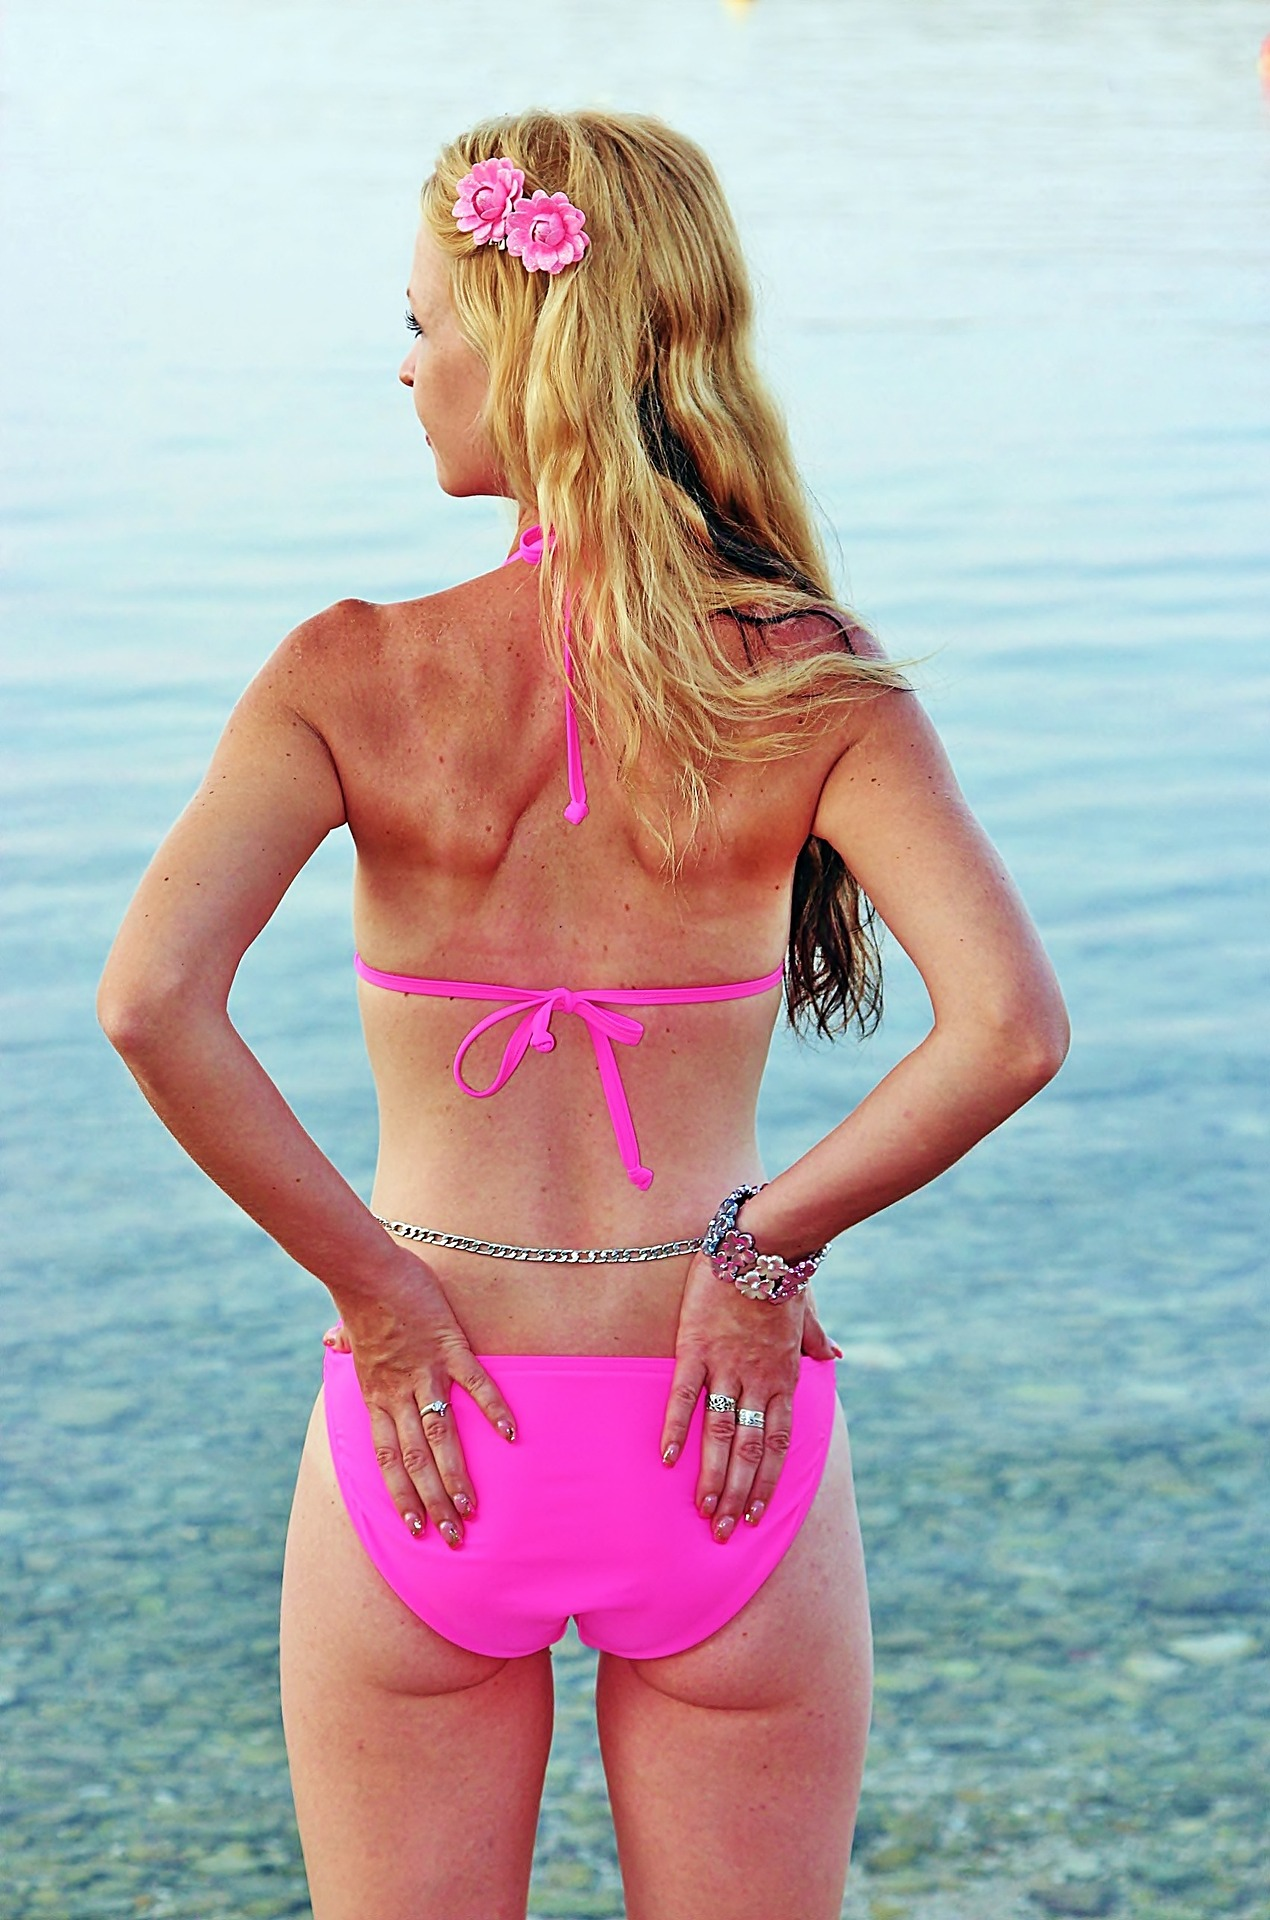 Bikini Buns   New At home Butt Shaping System  Image of blonde woman 1357314 1920